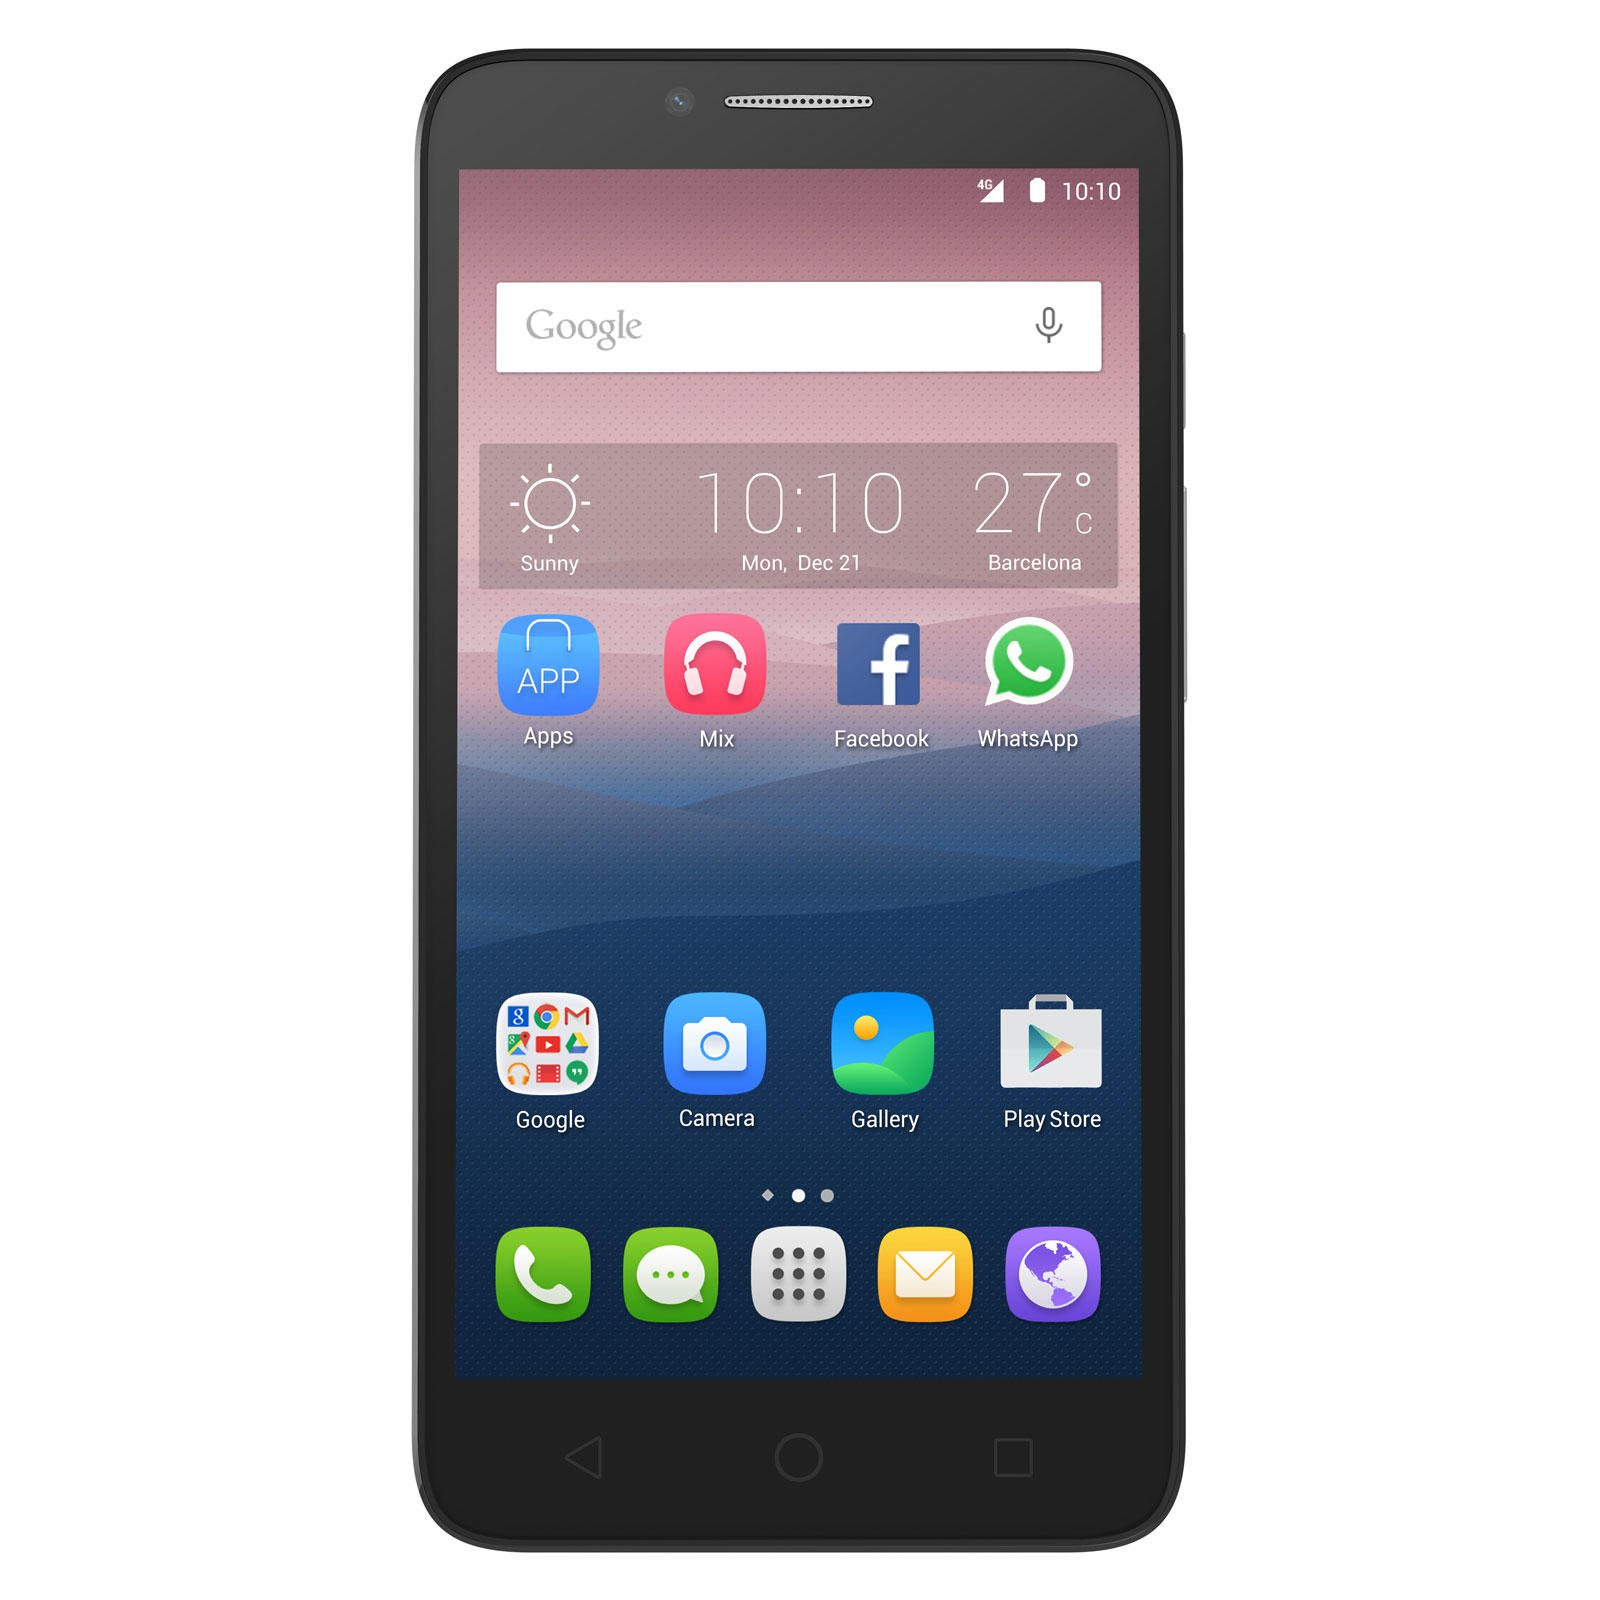 Smartphone Alcatel One Touch POP 3 4G Pantalla 5.5 1.5GB RAM Plata